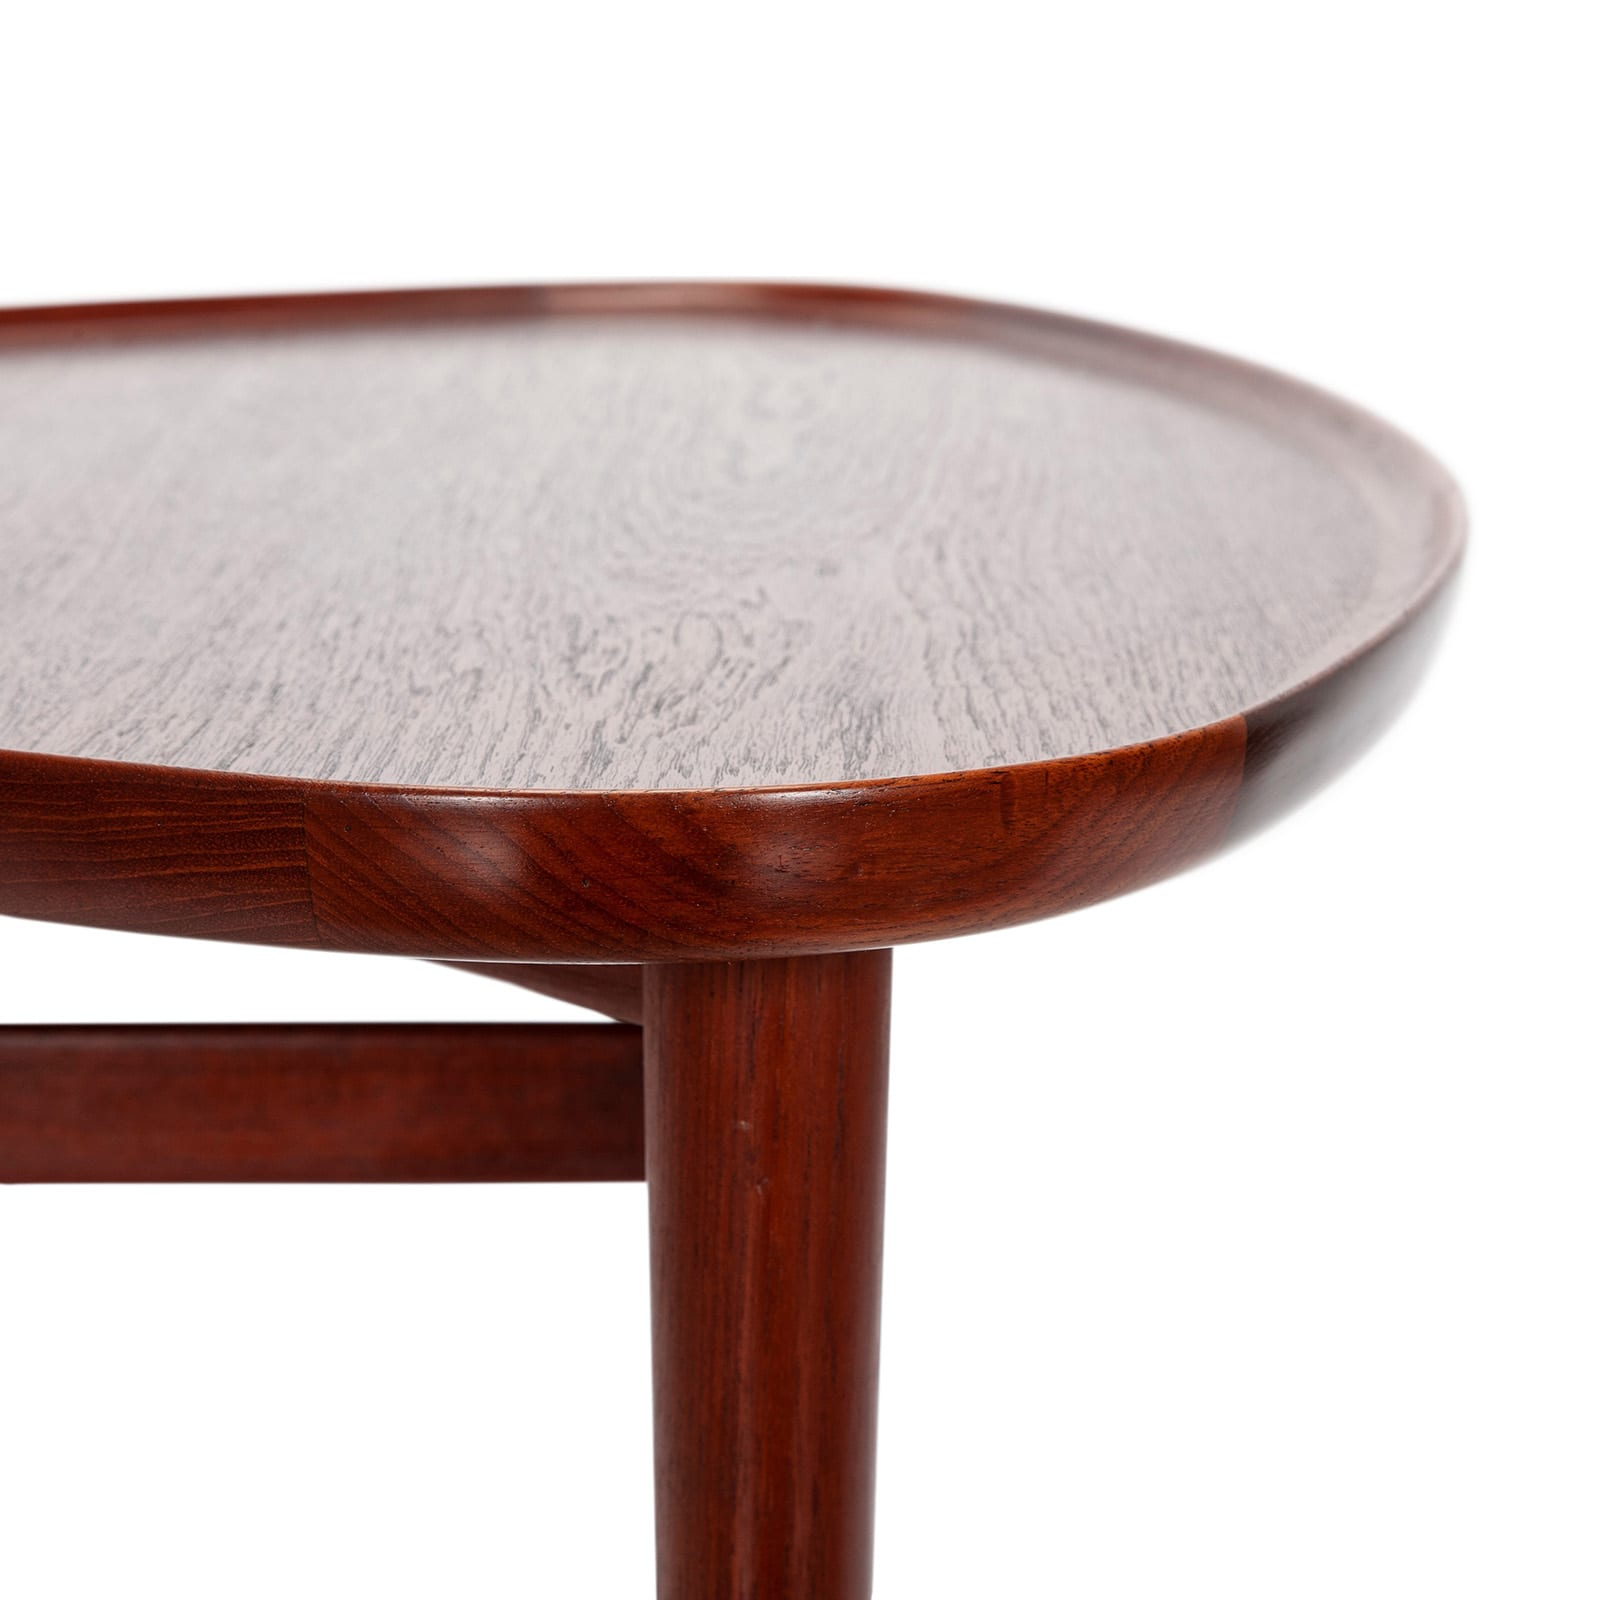 A sculptural side table